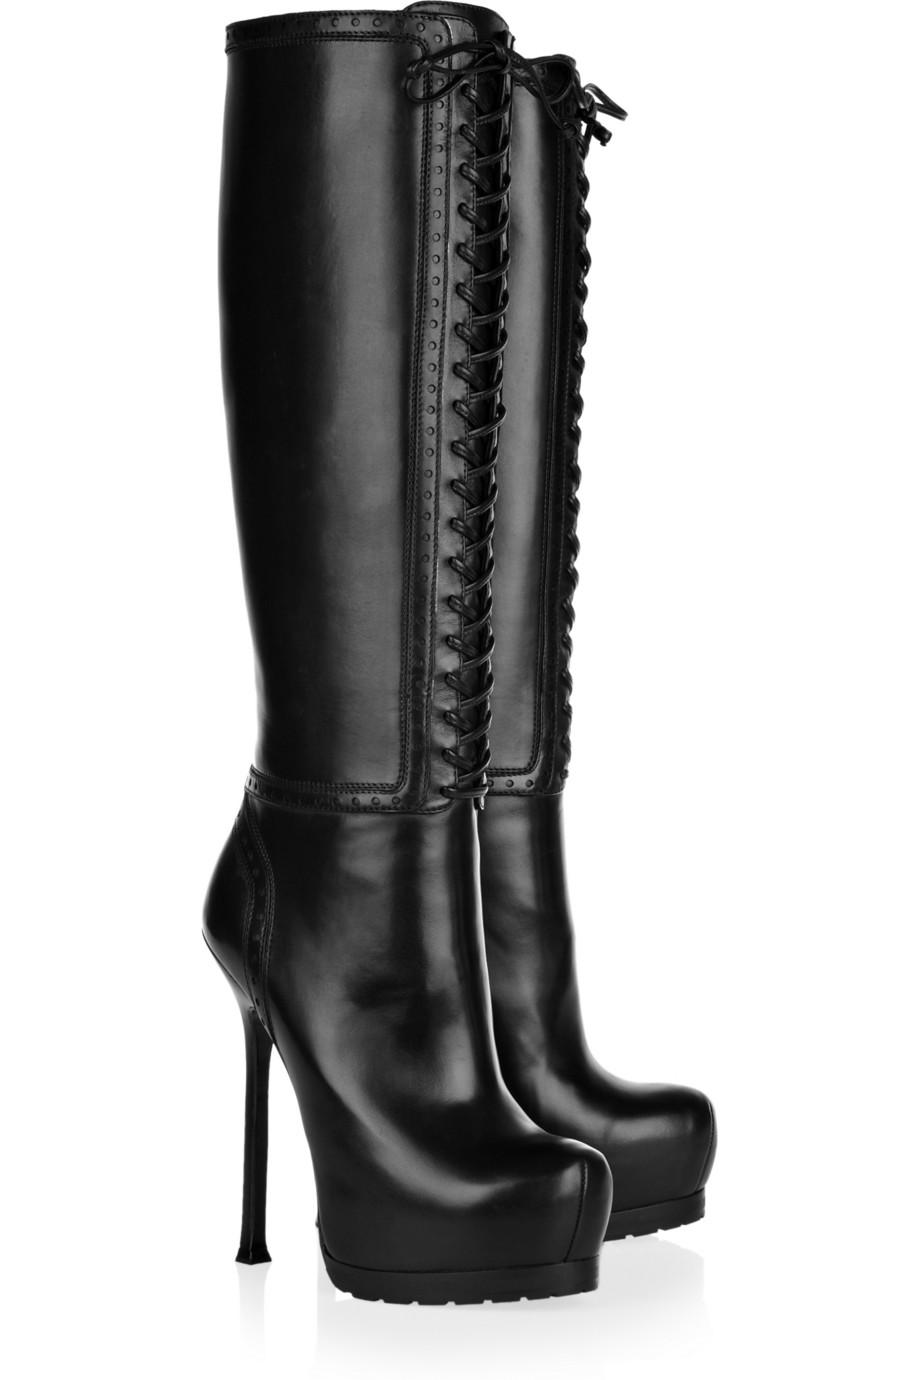 Black High Heel Lace Up Boots